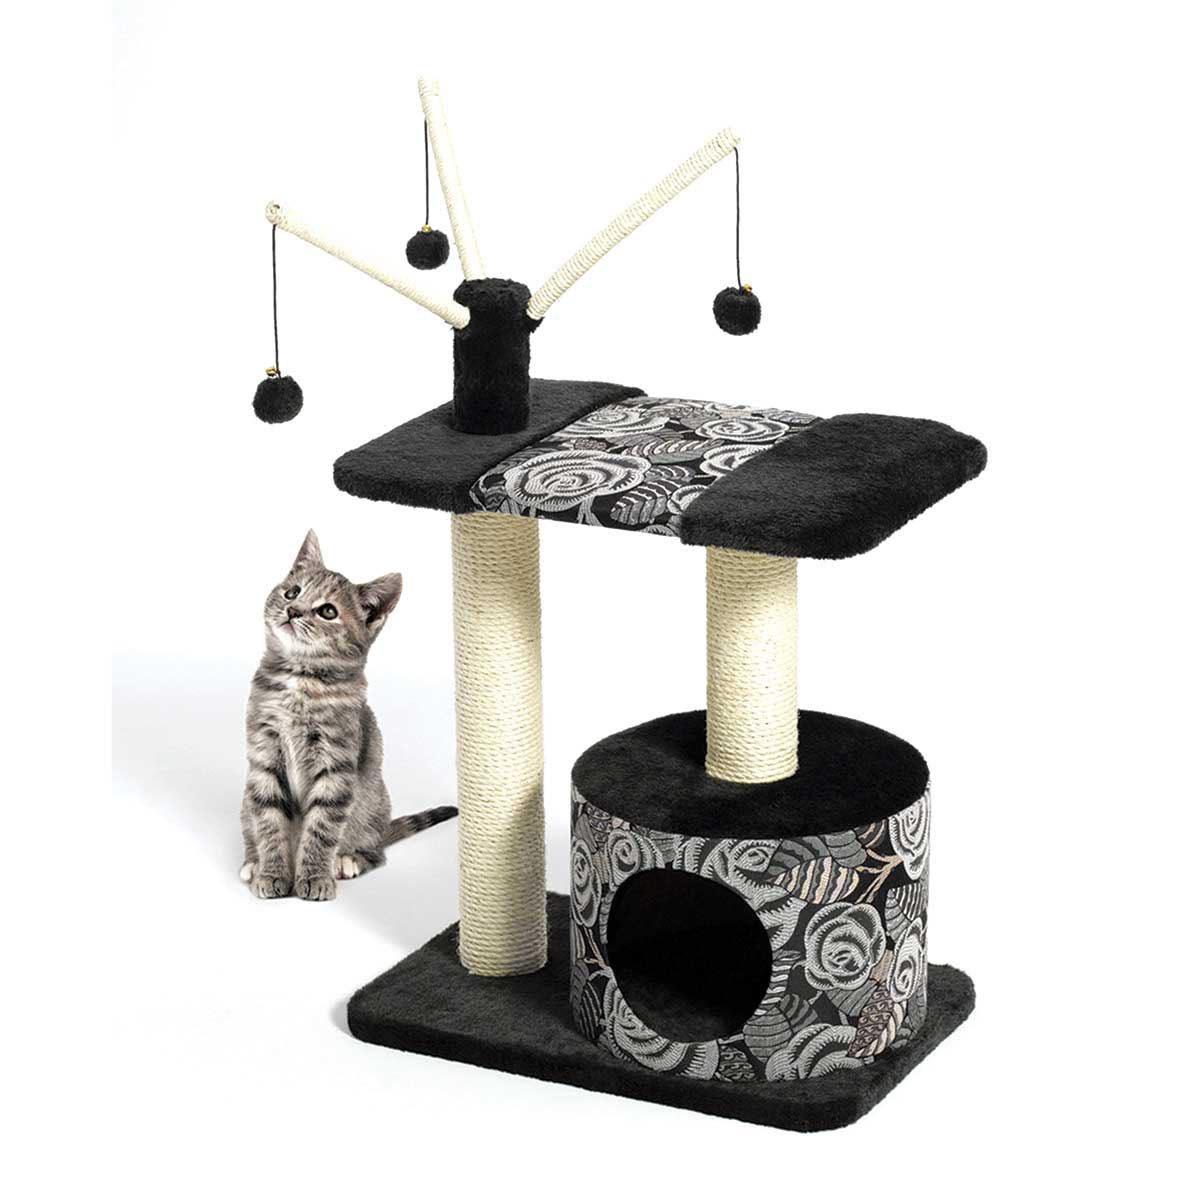 Feline Nuvo Catitude Carnival Cat Furniture 27 inches by 16.5 inches by 37.5 inches